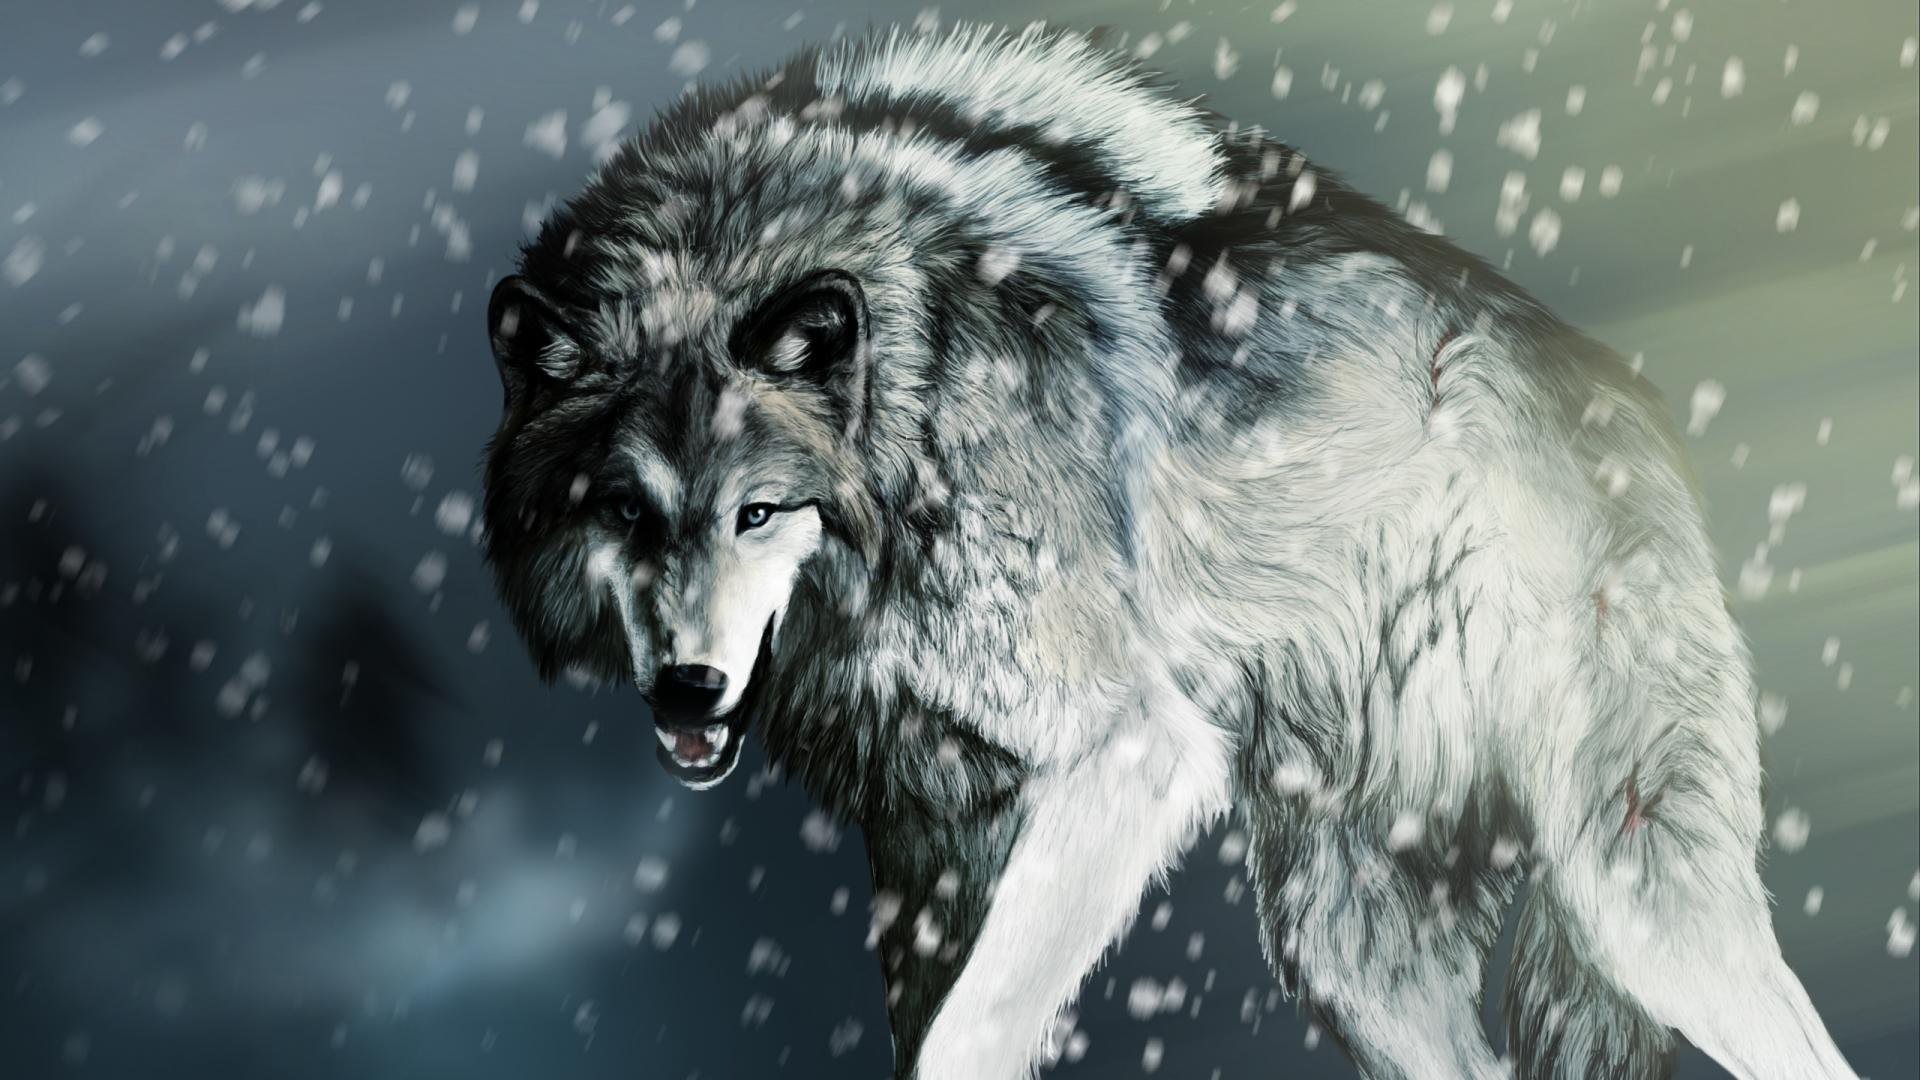 1920x1080 4. lone-wolf-wallpaper-HD4-600x338